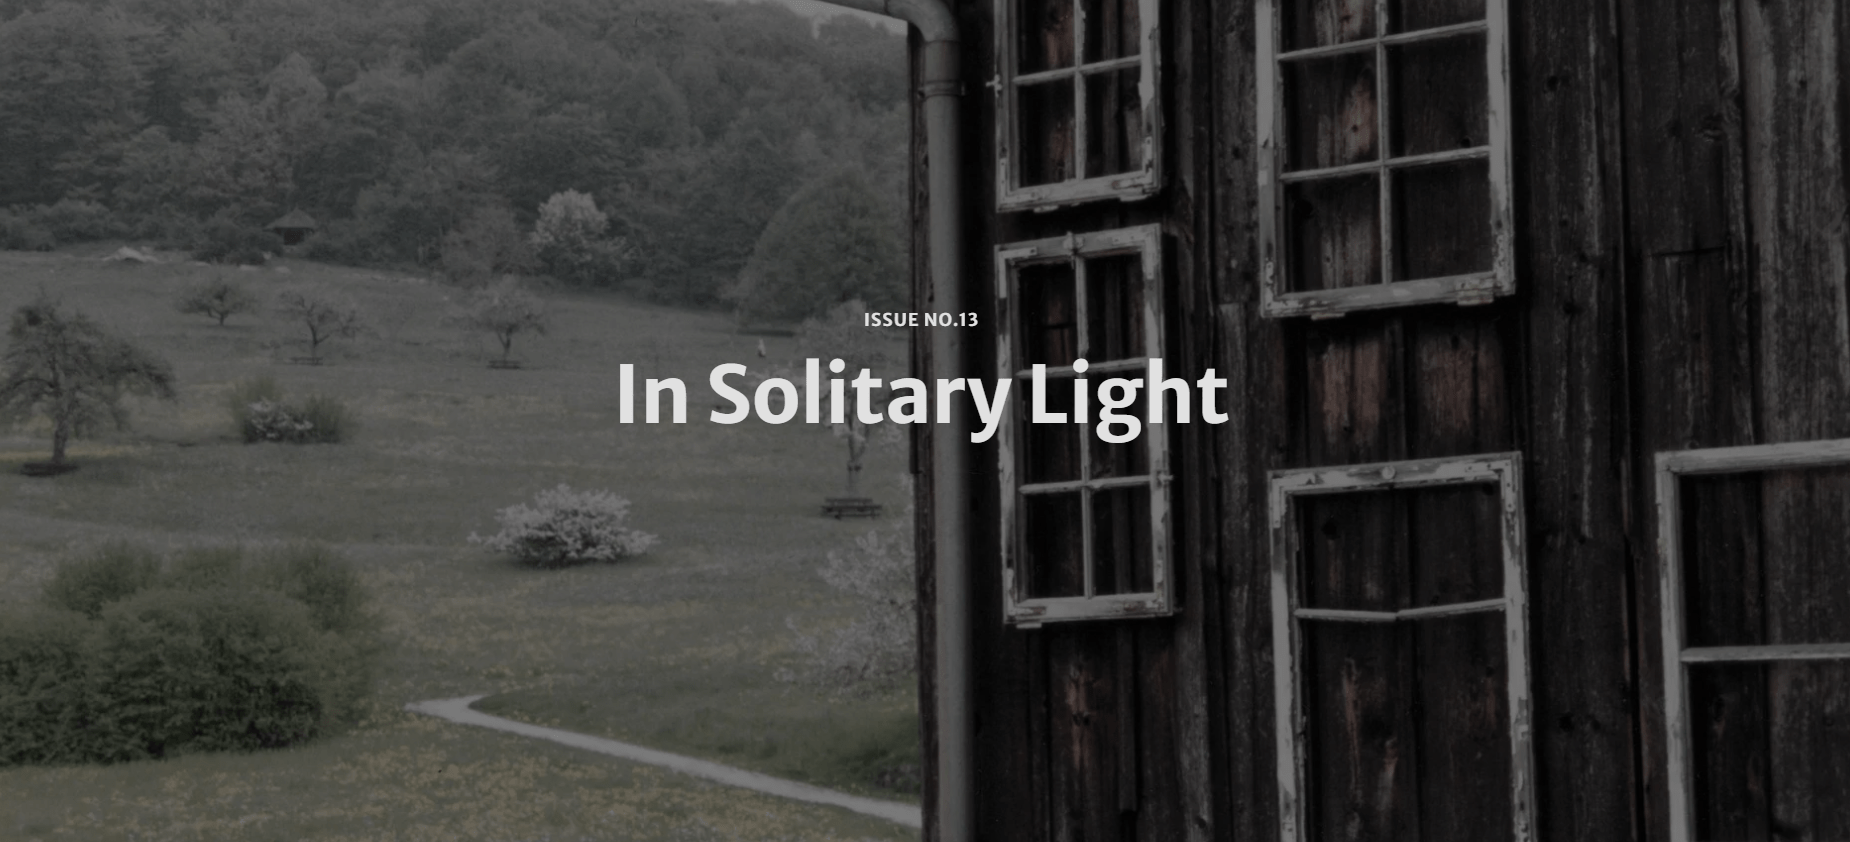 insolitarylightcover